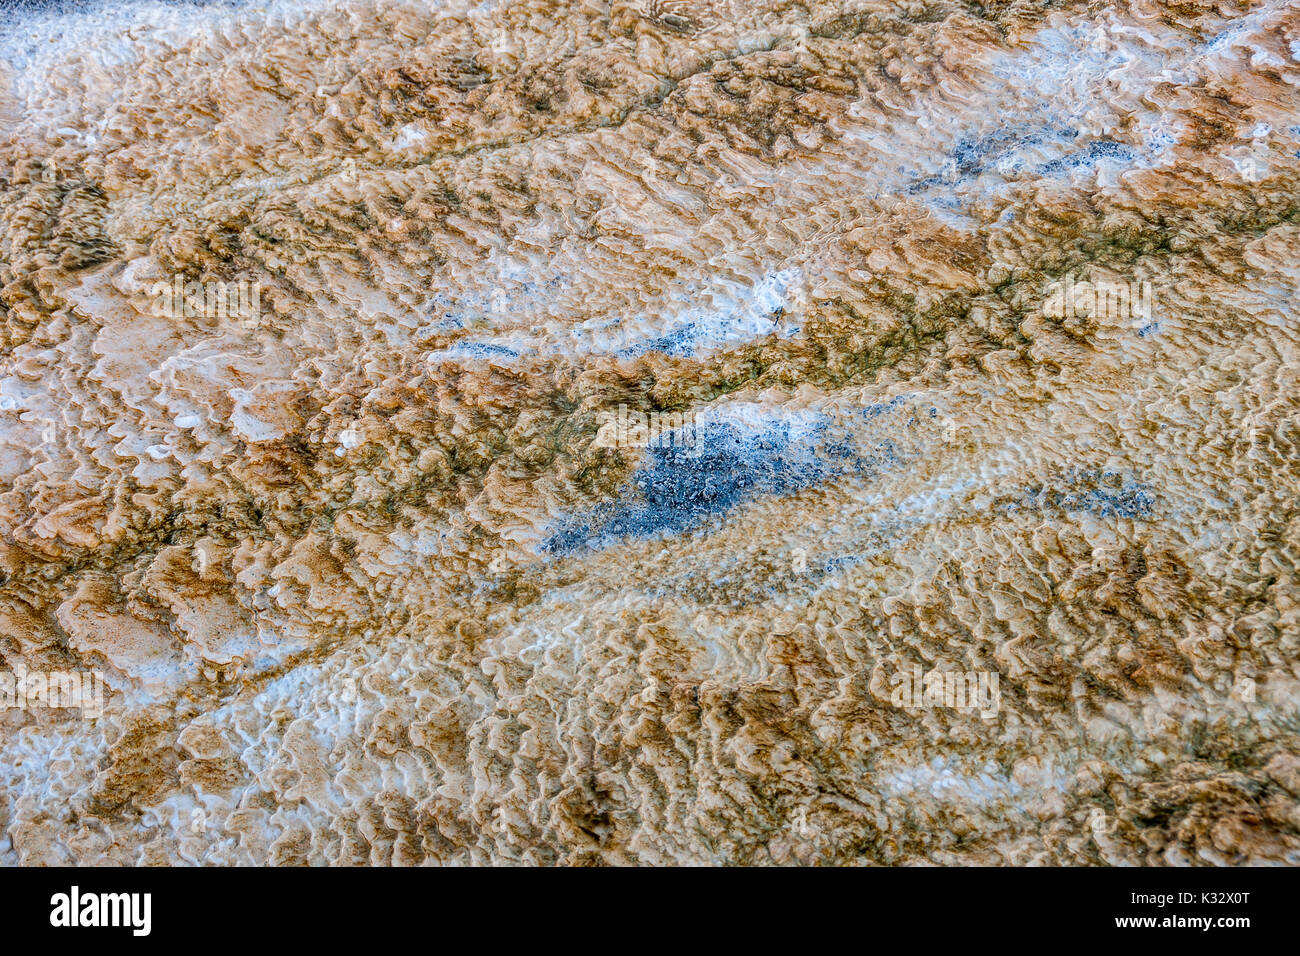 Shades and textures in the Mammoth Hot Springs area of Yellowstone National Park in winter - Stock Image